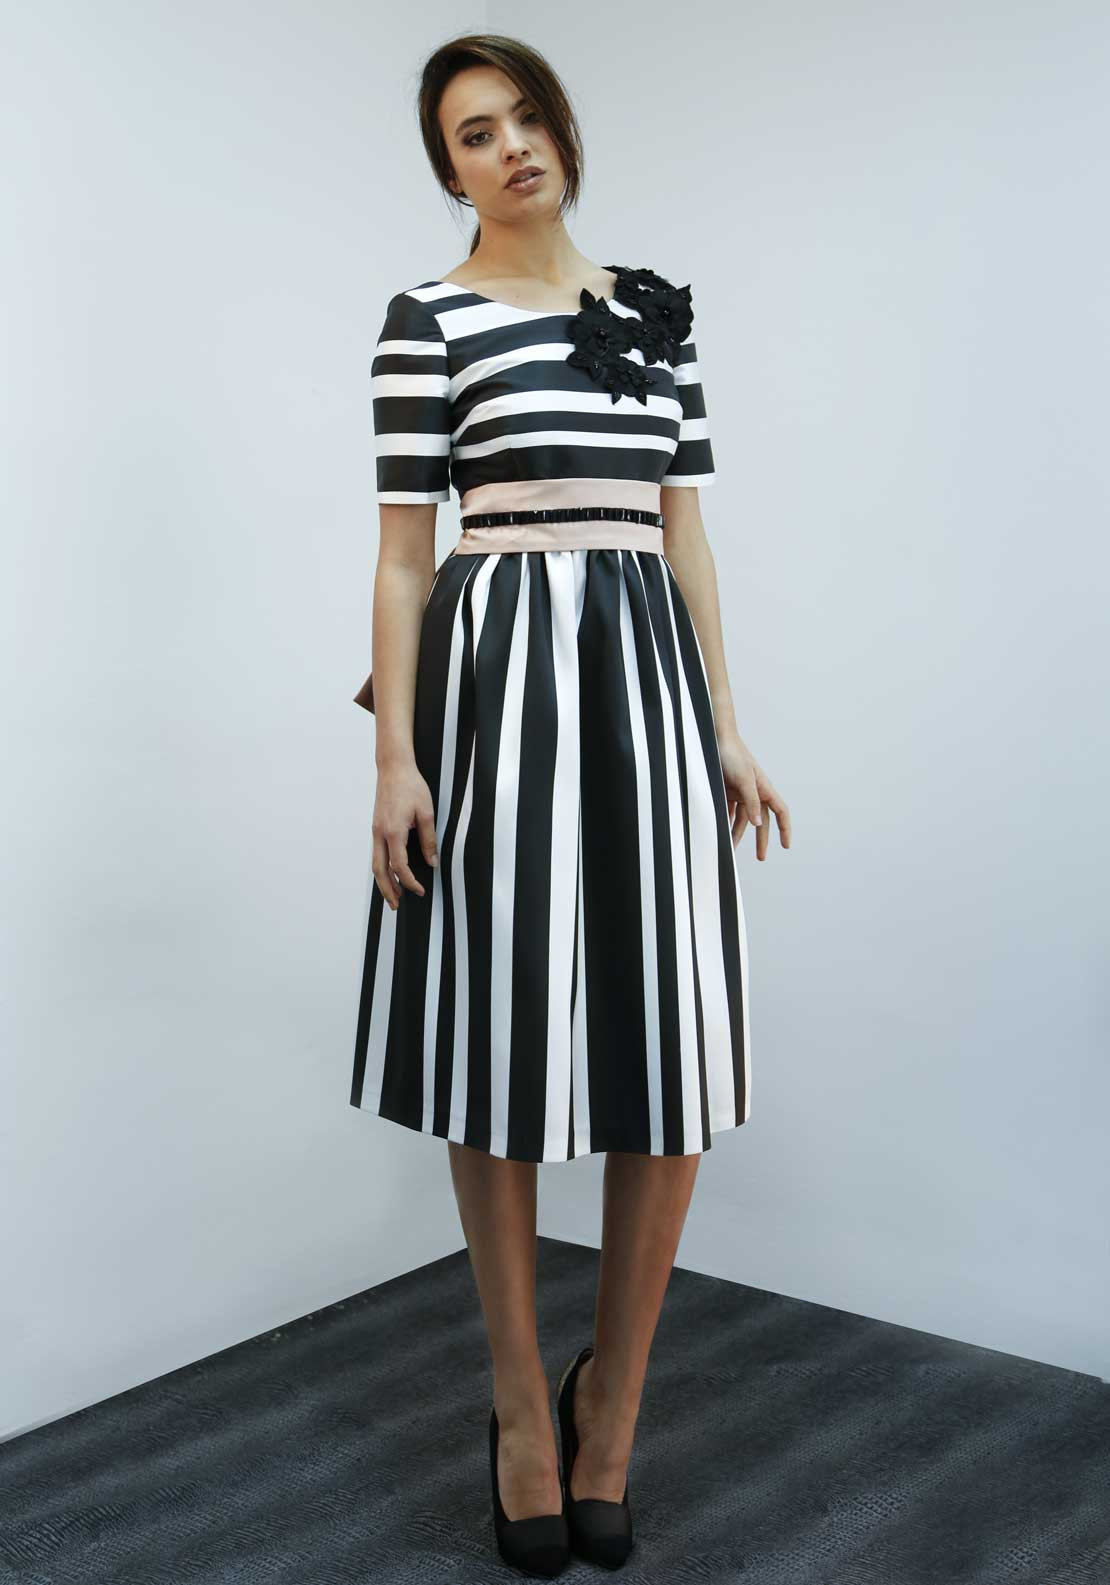 Matilde Cano Striped Short Sleeve Fit & Flare Dress, Black and White